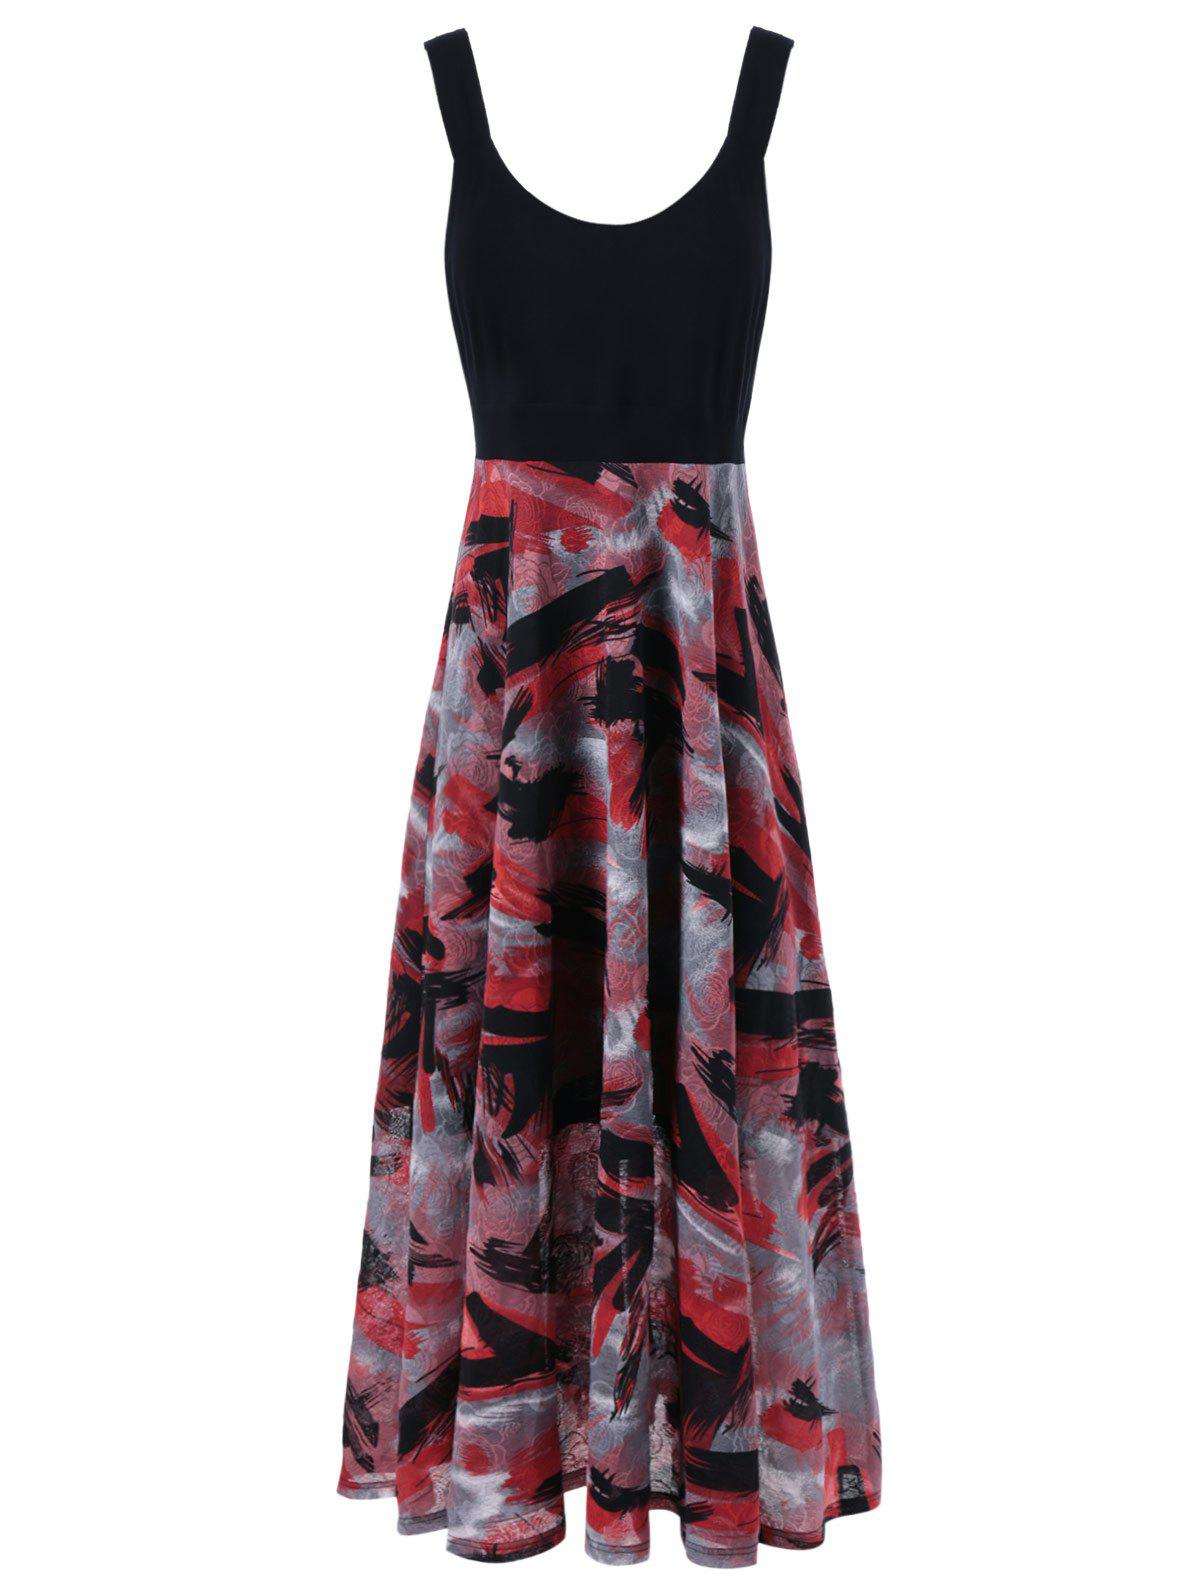 Plus Size Tie Dye Midi Casual Flower Dress - RED/BLACK 2XL